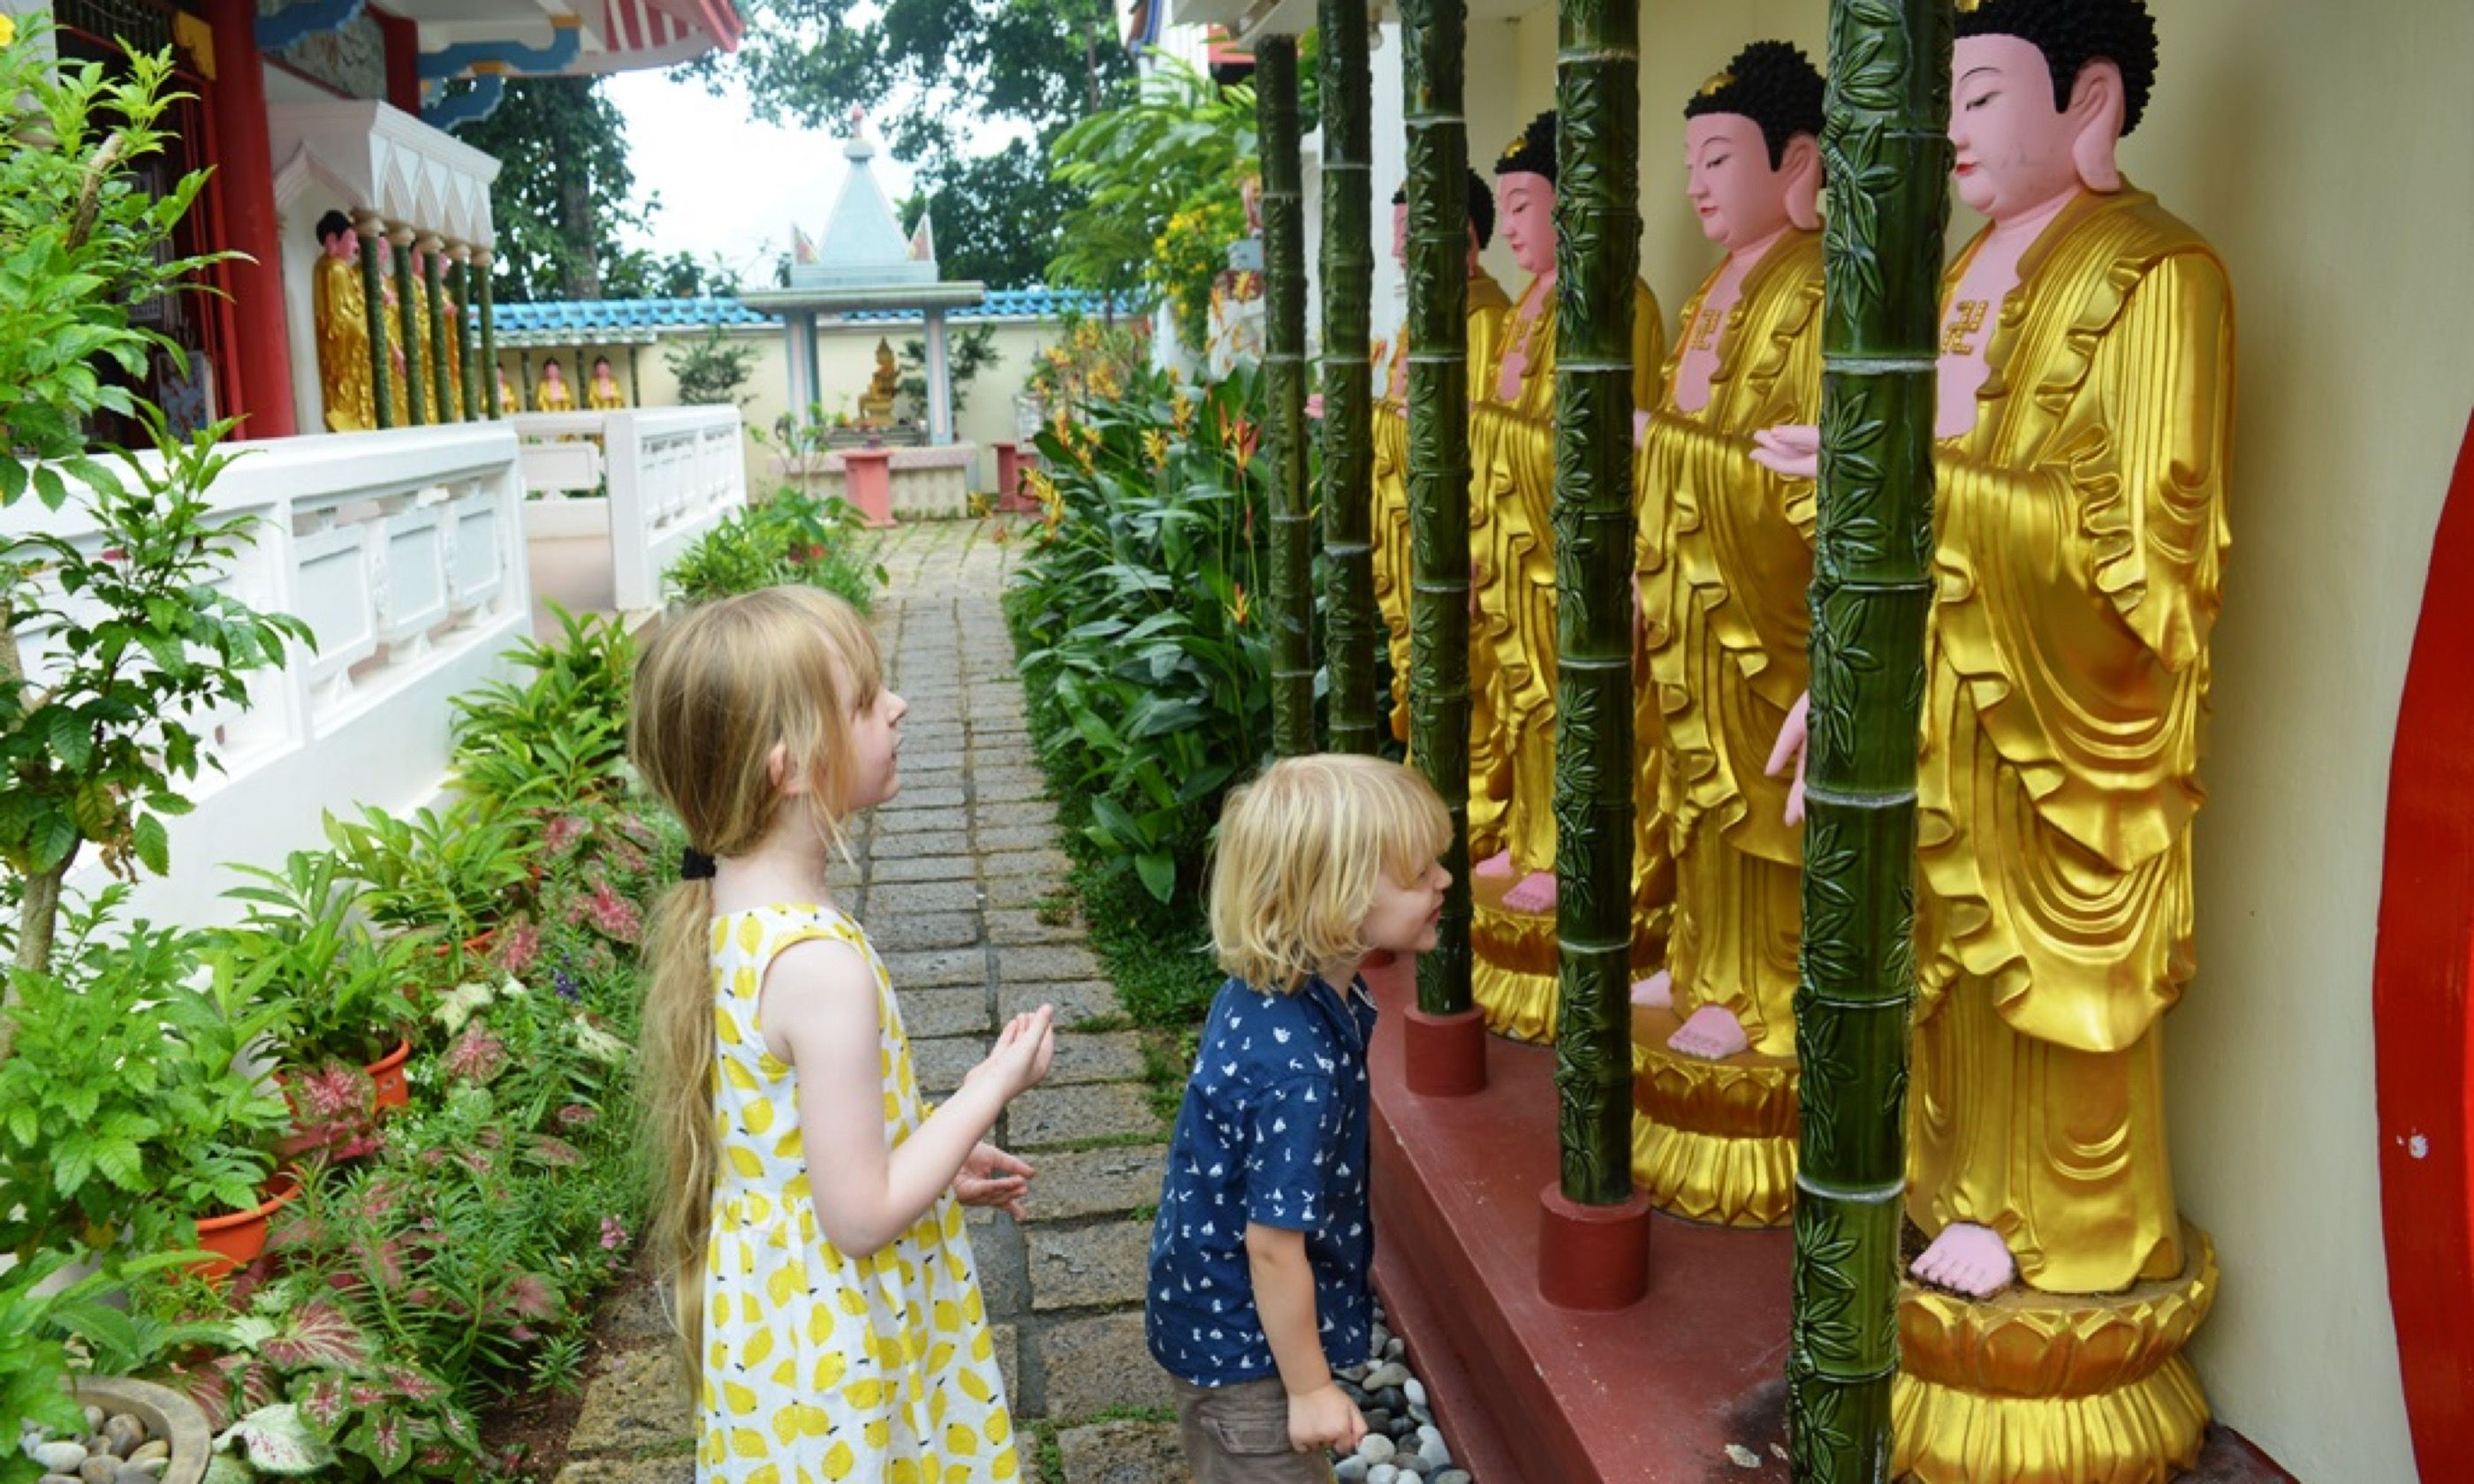 Kids admiring the buddhas at Kek Lok Si (Globalmouse.com)